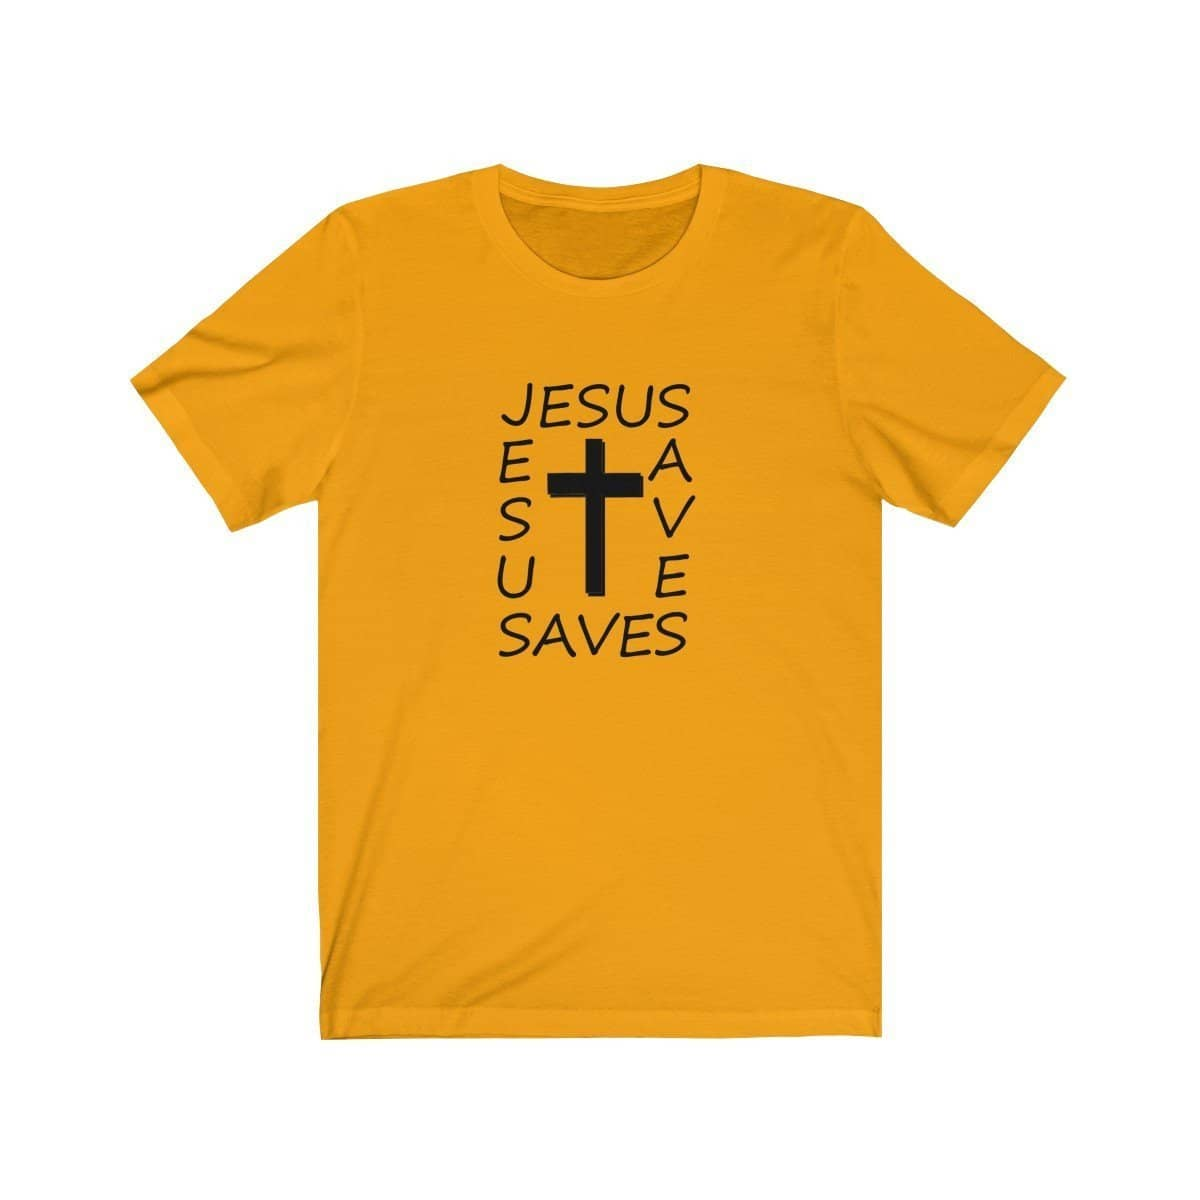 Bella & Canvas 3001 T-Shirt Jesus Saves in 14 Colors and 7 Sizes T-Shirt (3342719811684)